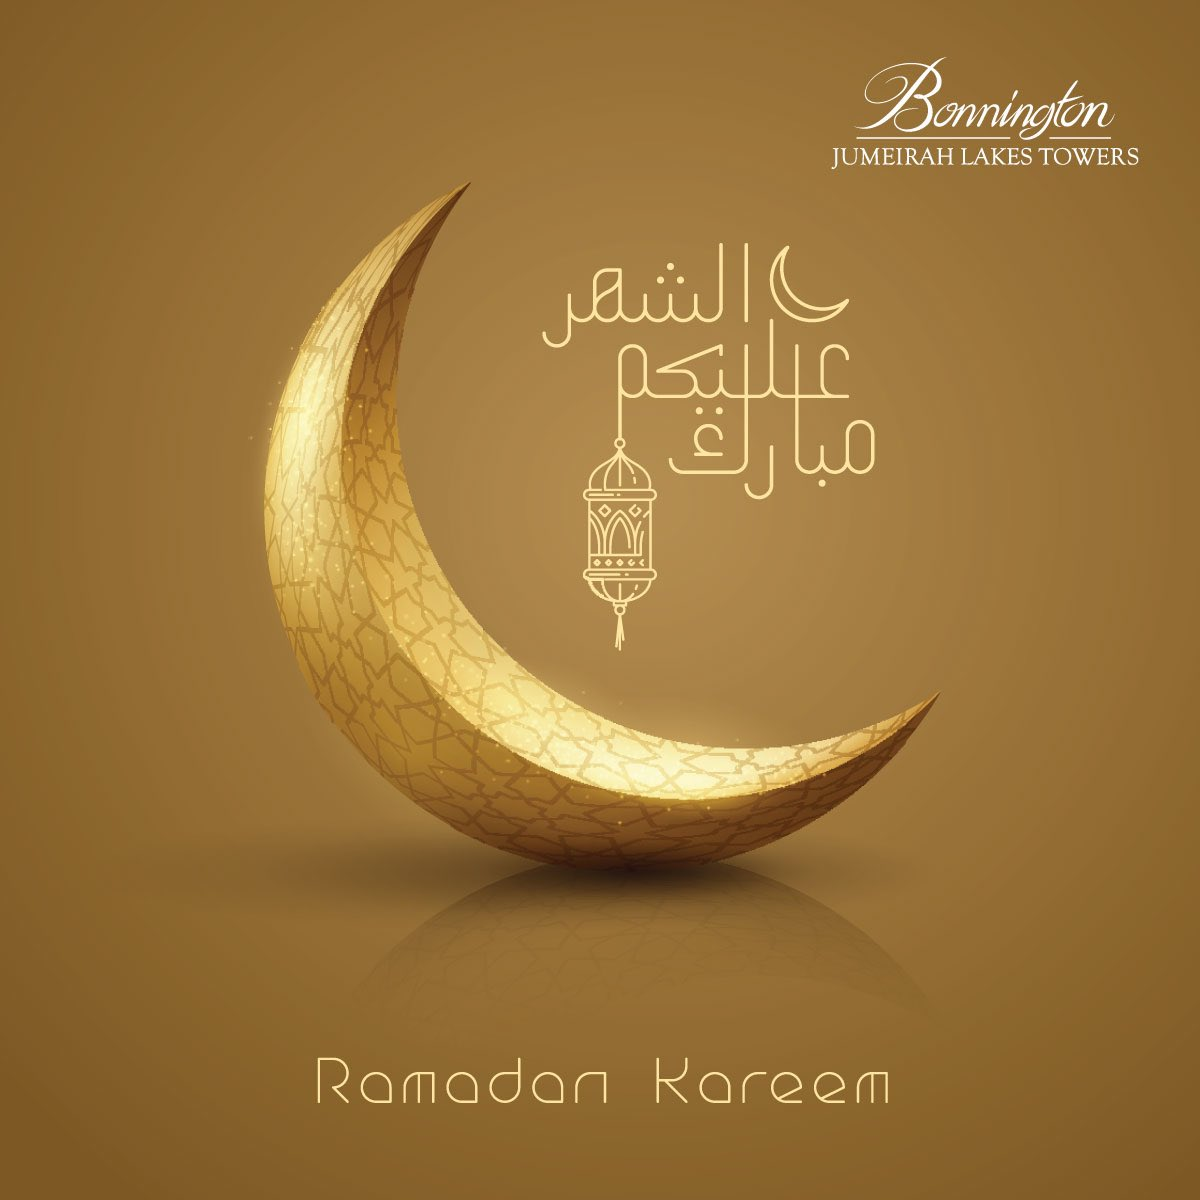 Wishing you and your family a blessed, peaceful and healthy holy month. Ramadan Kareem. 🌙 #BonningtonTower #RamadanKareem https://t.co/0wryp8g74s